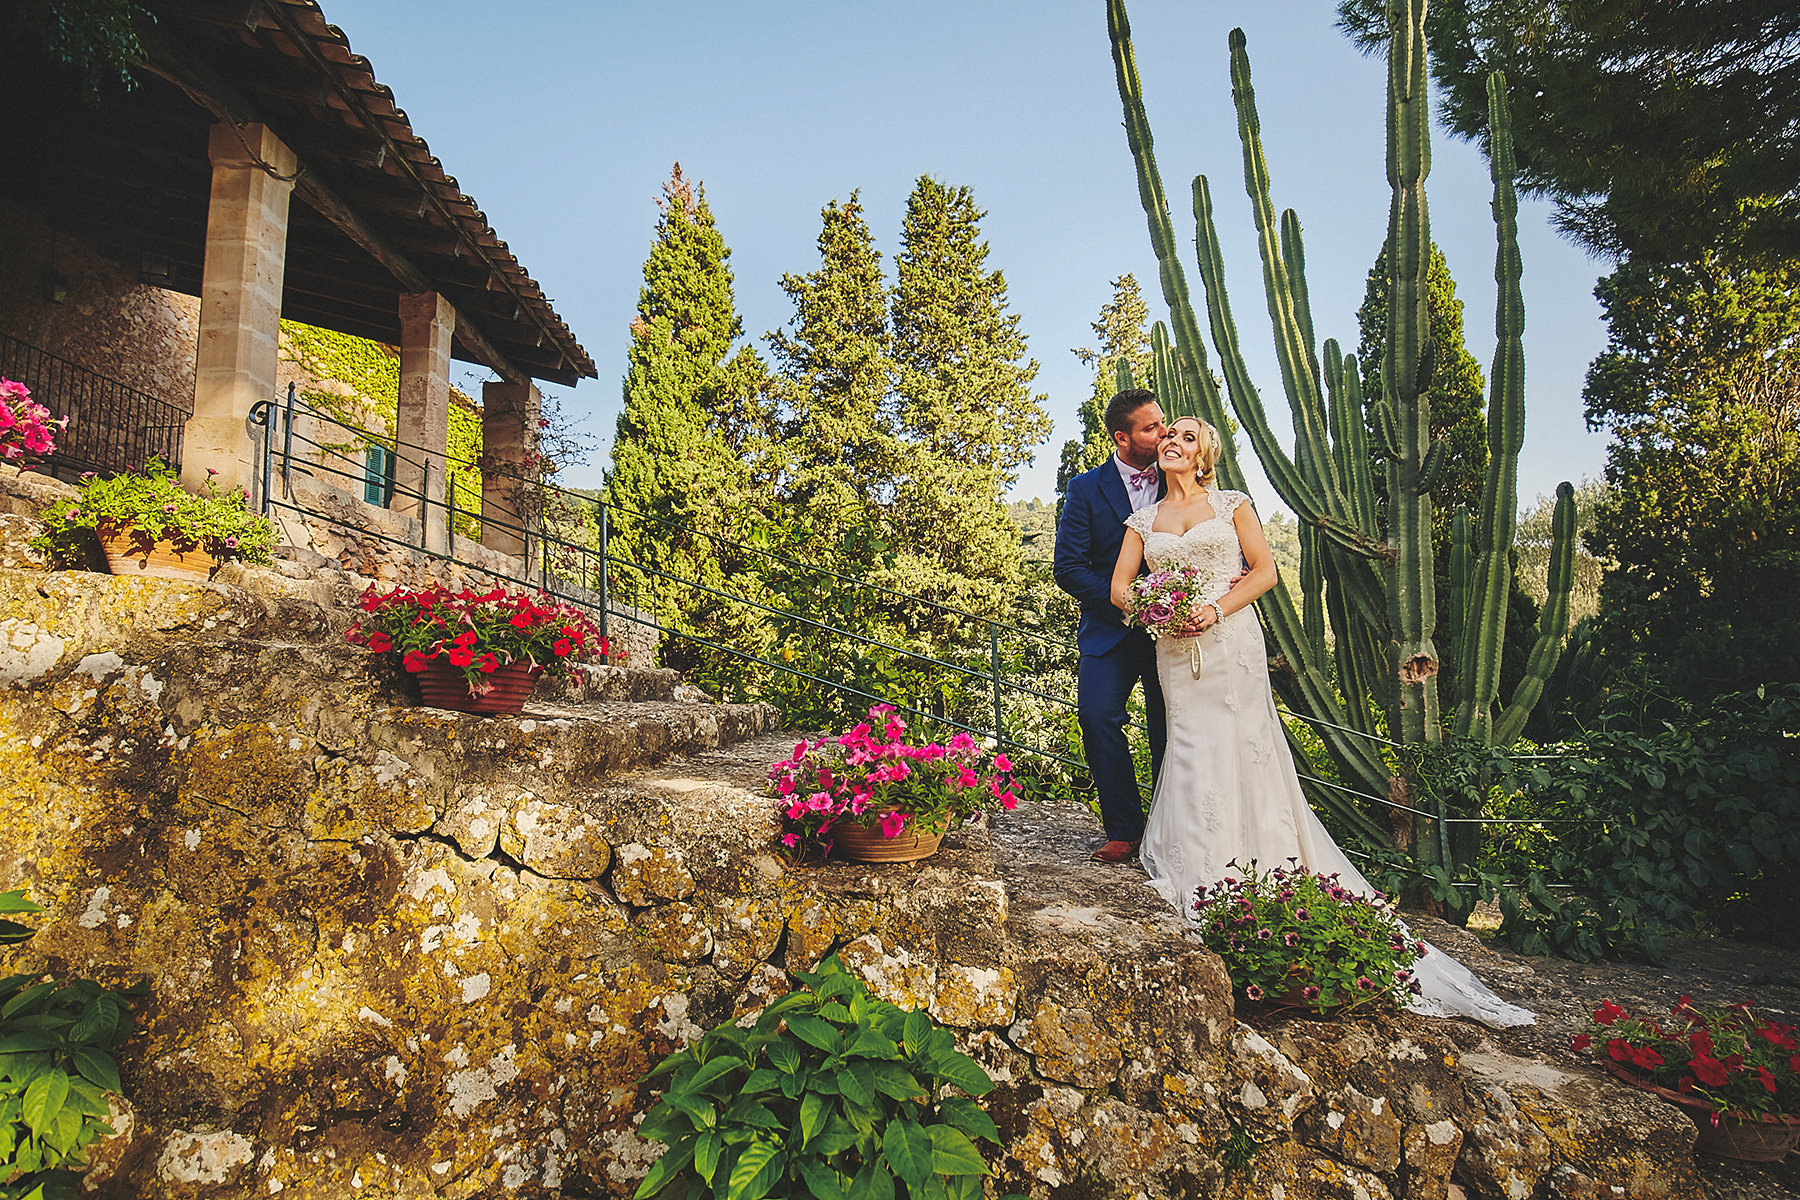 278 - Destination wedding in a magical Mallorca